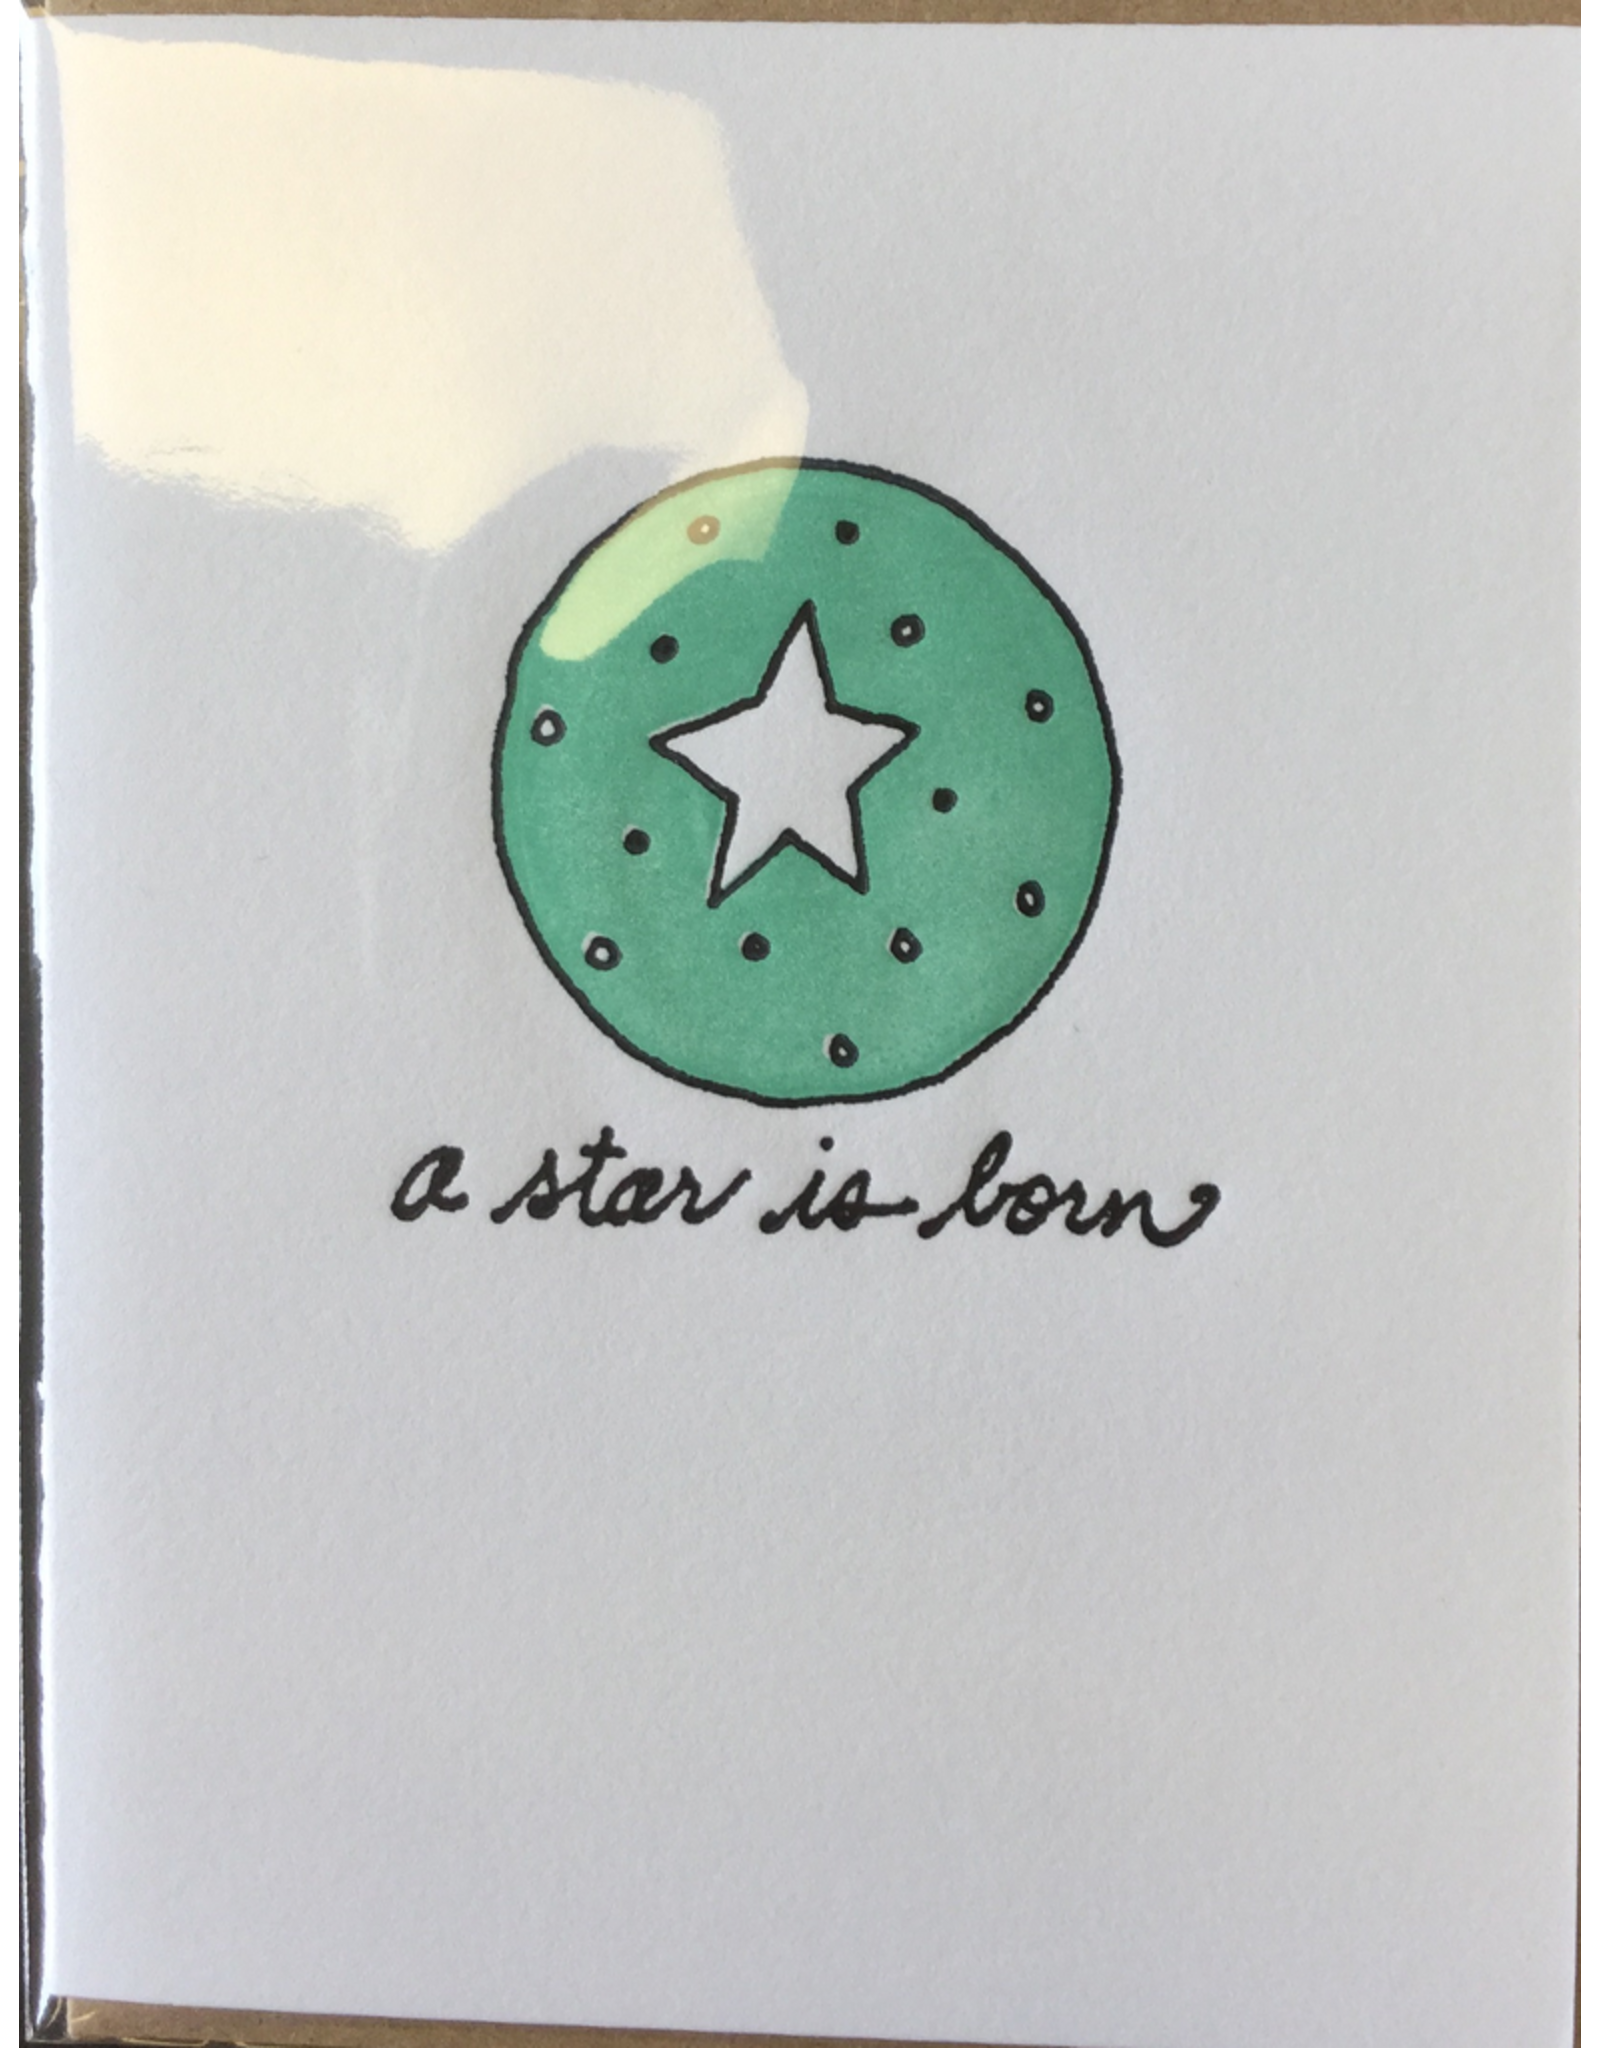 Karen Fuhr A star is born, card